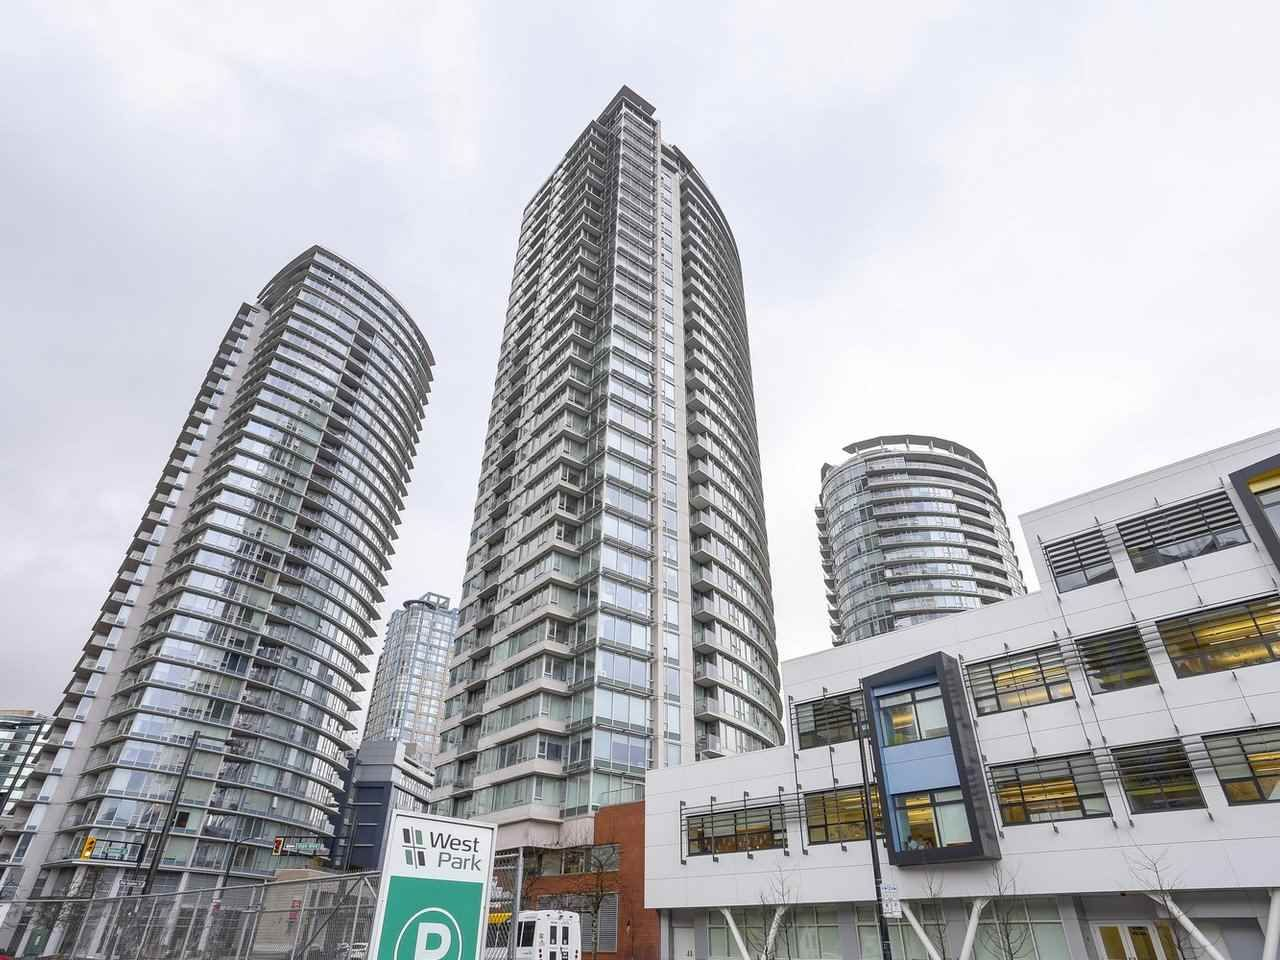 Main Photo: 2803 688 ABBOTT STREET in Vancouver: Downtown VW Condo for sale (Vancouver West)  : MLS®# R2237516